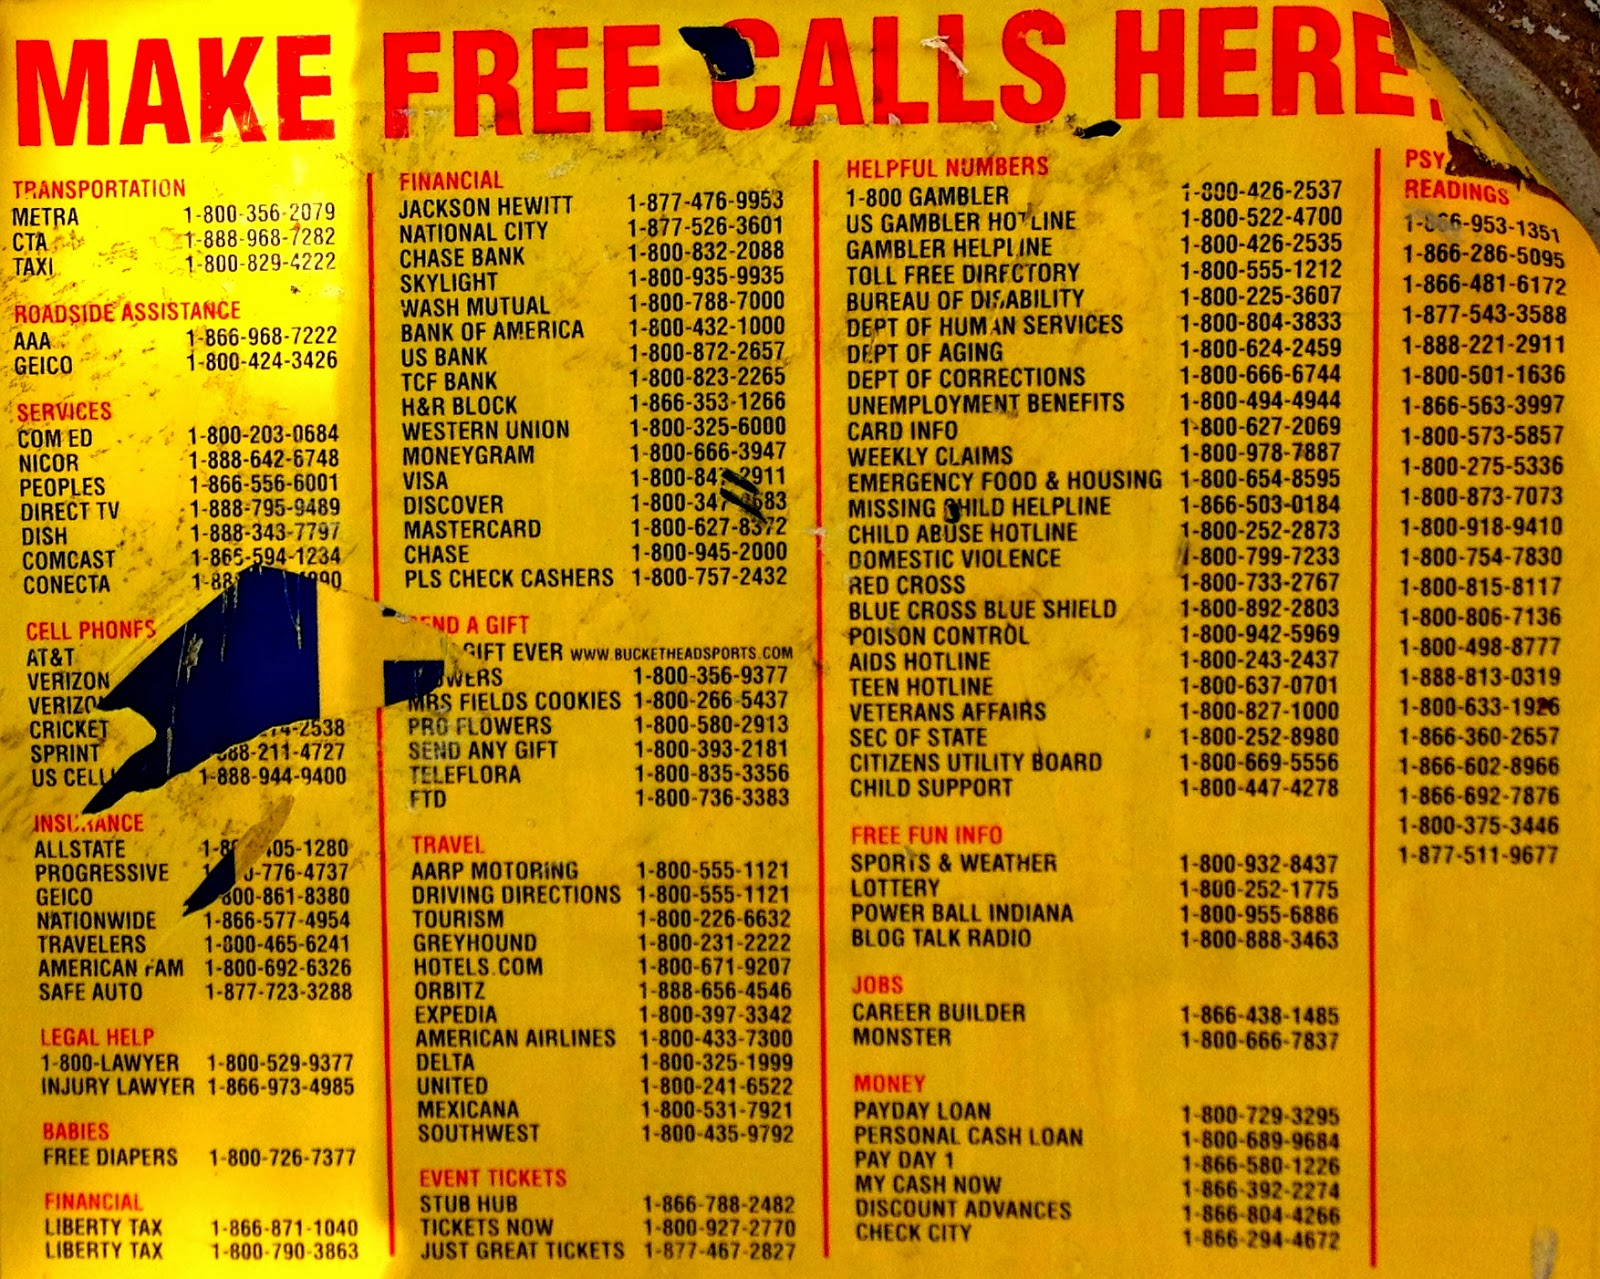 free prostitutes phone numbers